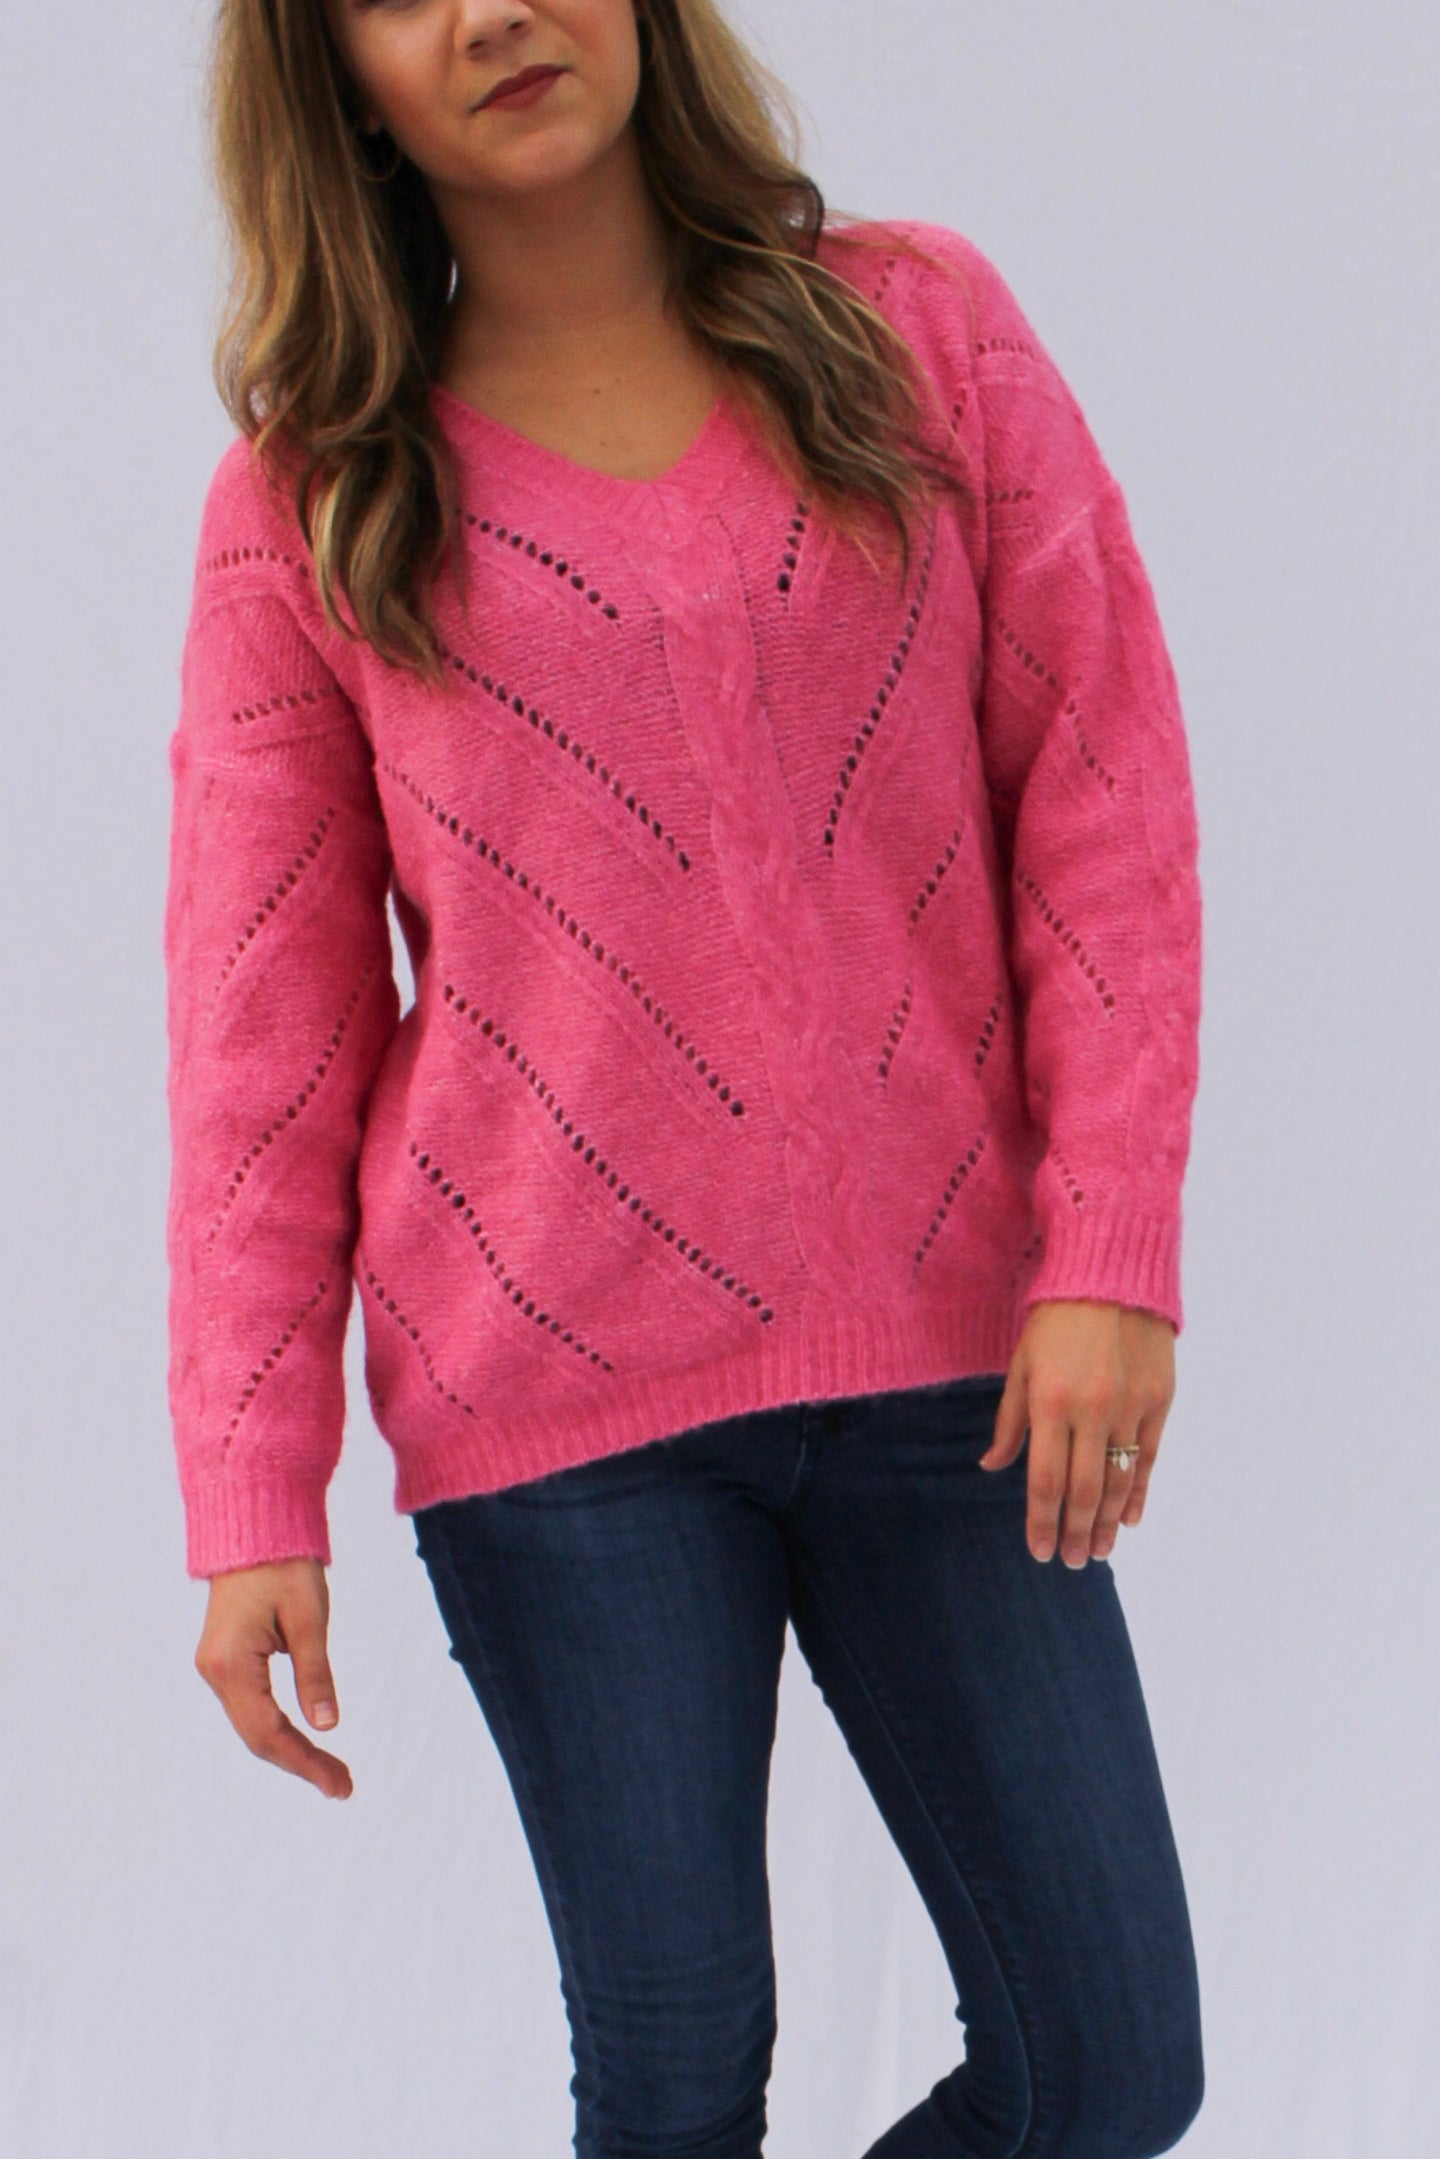 Pink Crochet Sweater